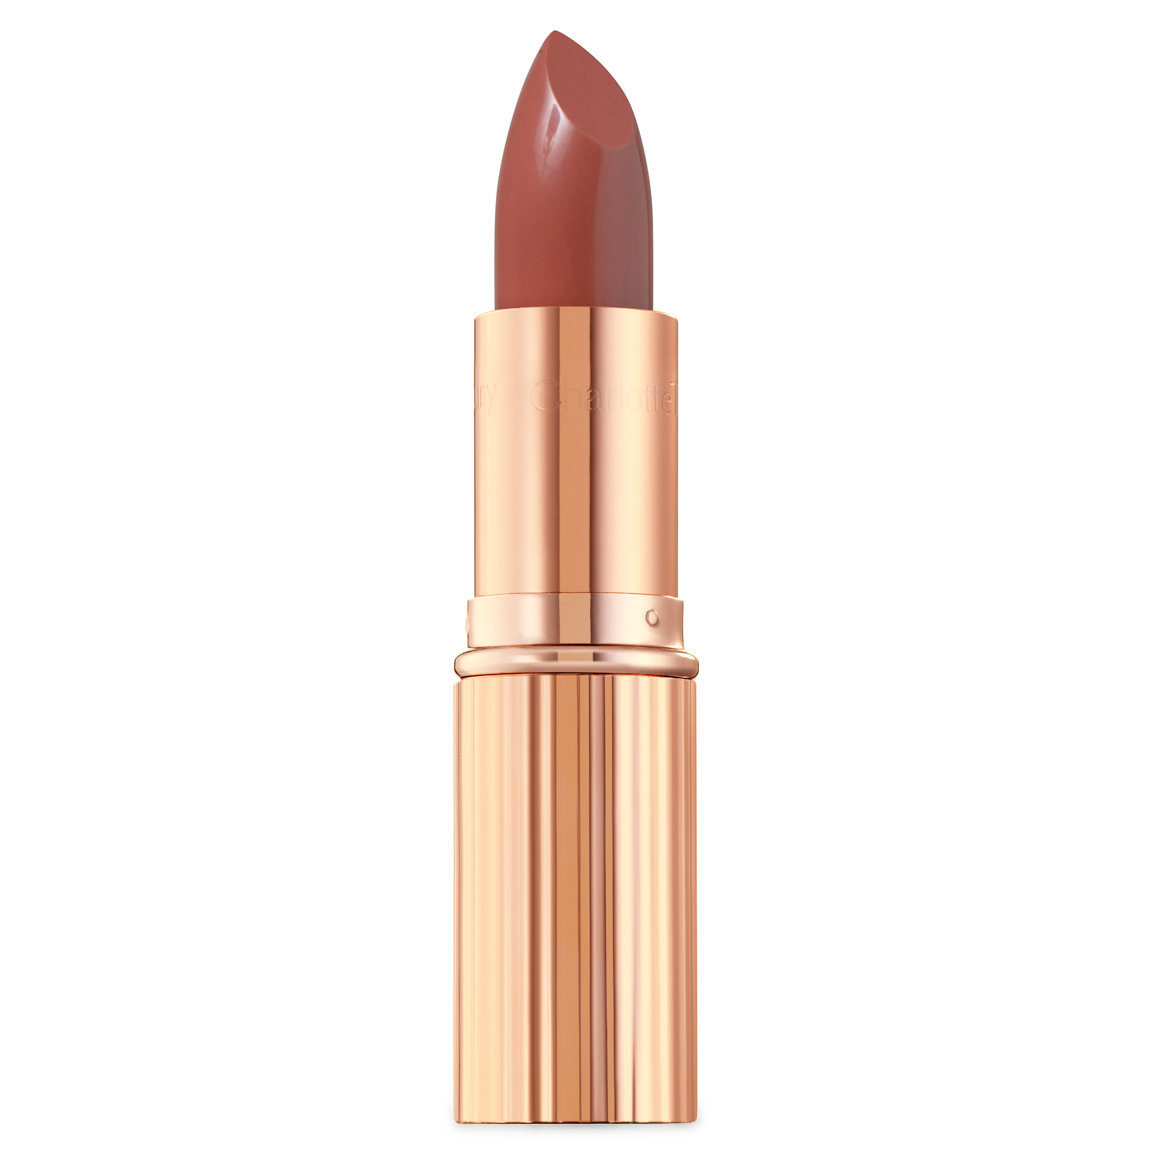 Charlotte Tilbury K.I.S.S.I.N.G Pillow Talk Intense alternative view 1.